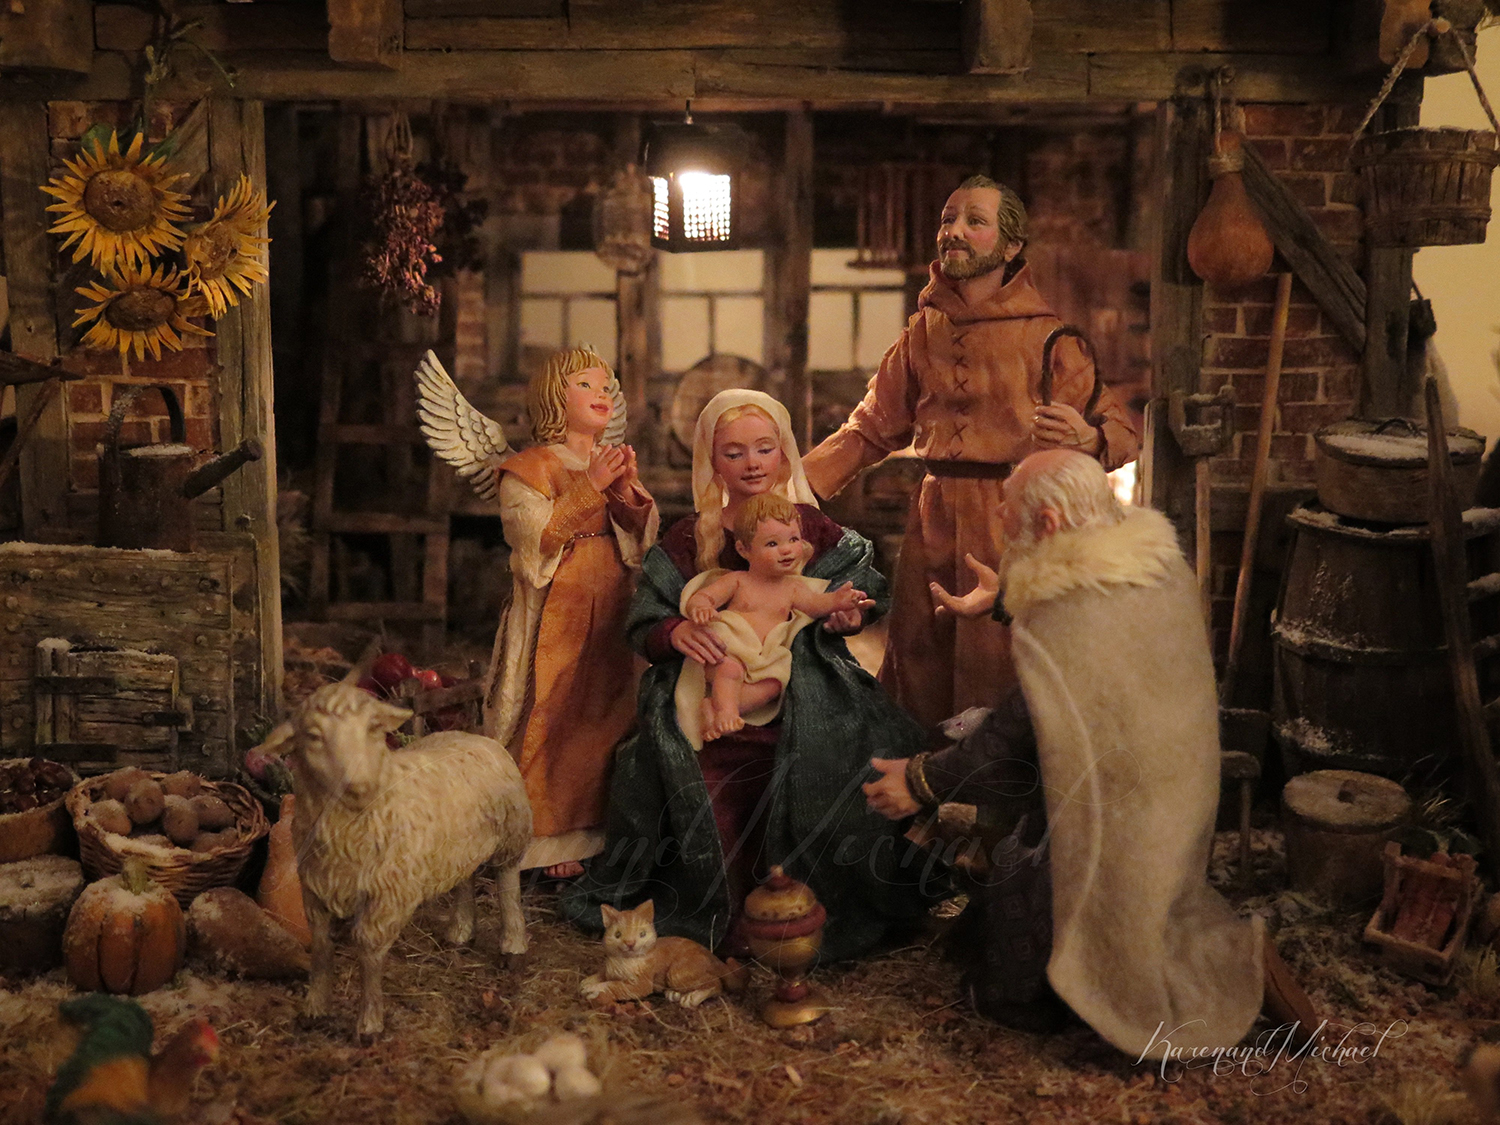 Karen Loccisano and R. Michael Palan, a husband-and-wife team of professional artists from Bridgewater, New Jersey, have been crafting this three-dimensional Flemish Nativity scene together since 2014. Their work has been influenced by several Dutch and Flemish Renaissance painters. The Nativity of Jesus Christ is depicted as taking place in a snowy, 16th-century Flemish village.Karen and Michael have included an angel with Down syndrome in this Nativity, standing near the Holy Family. Photo by R. Michael Palan.